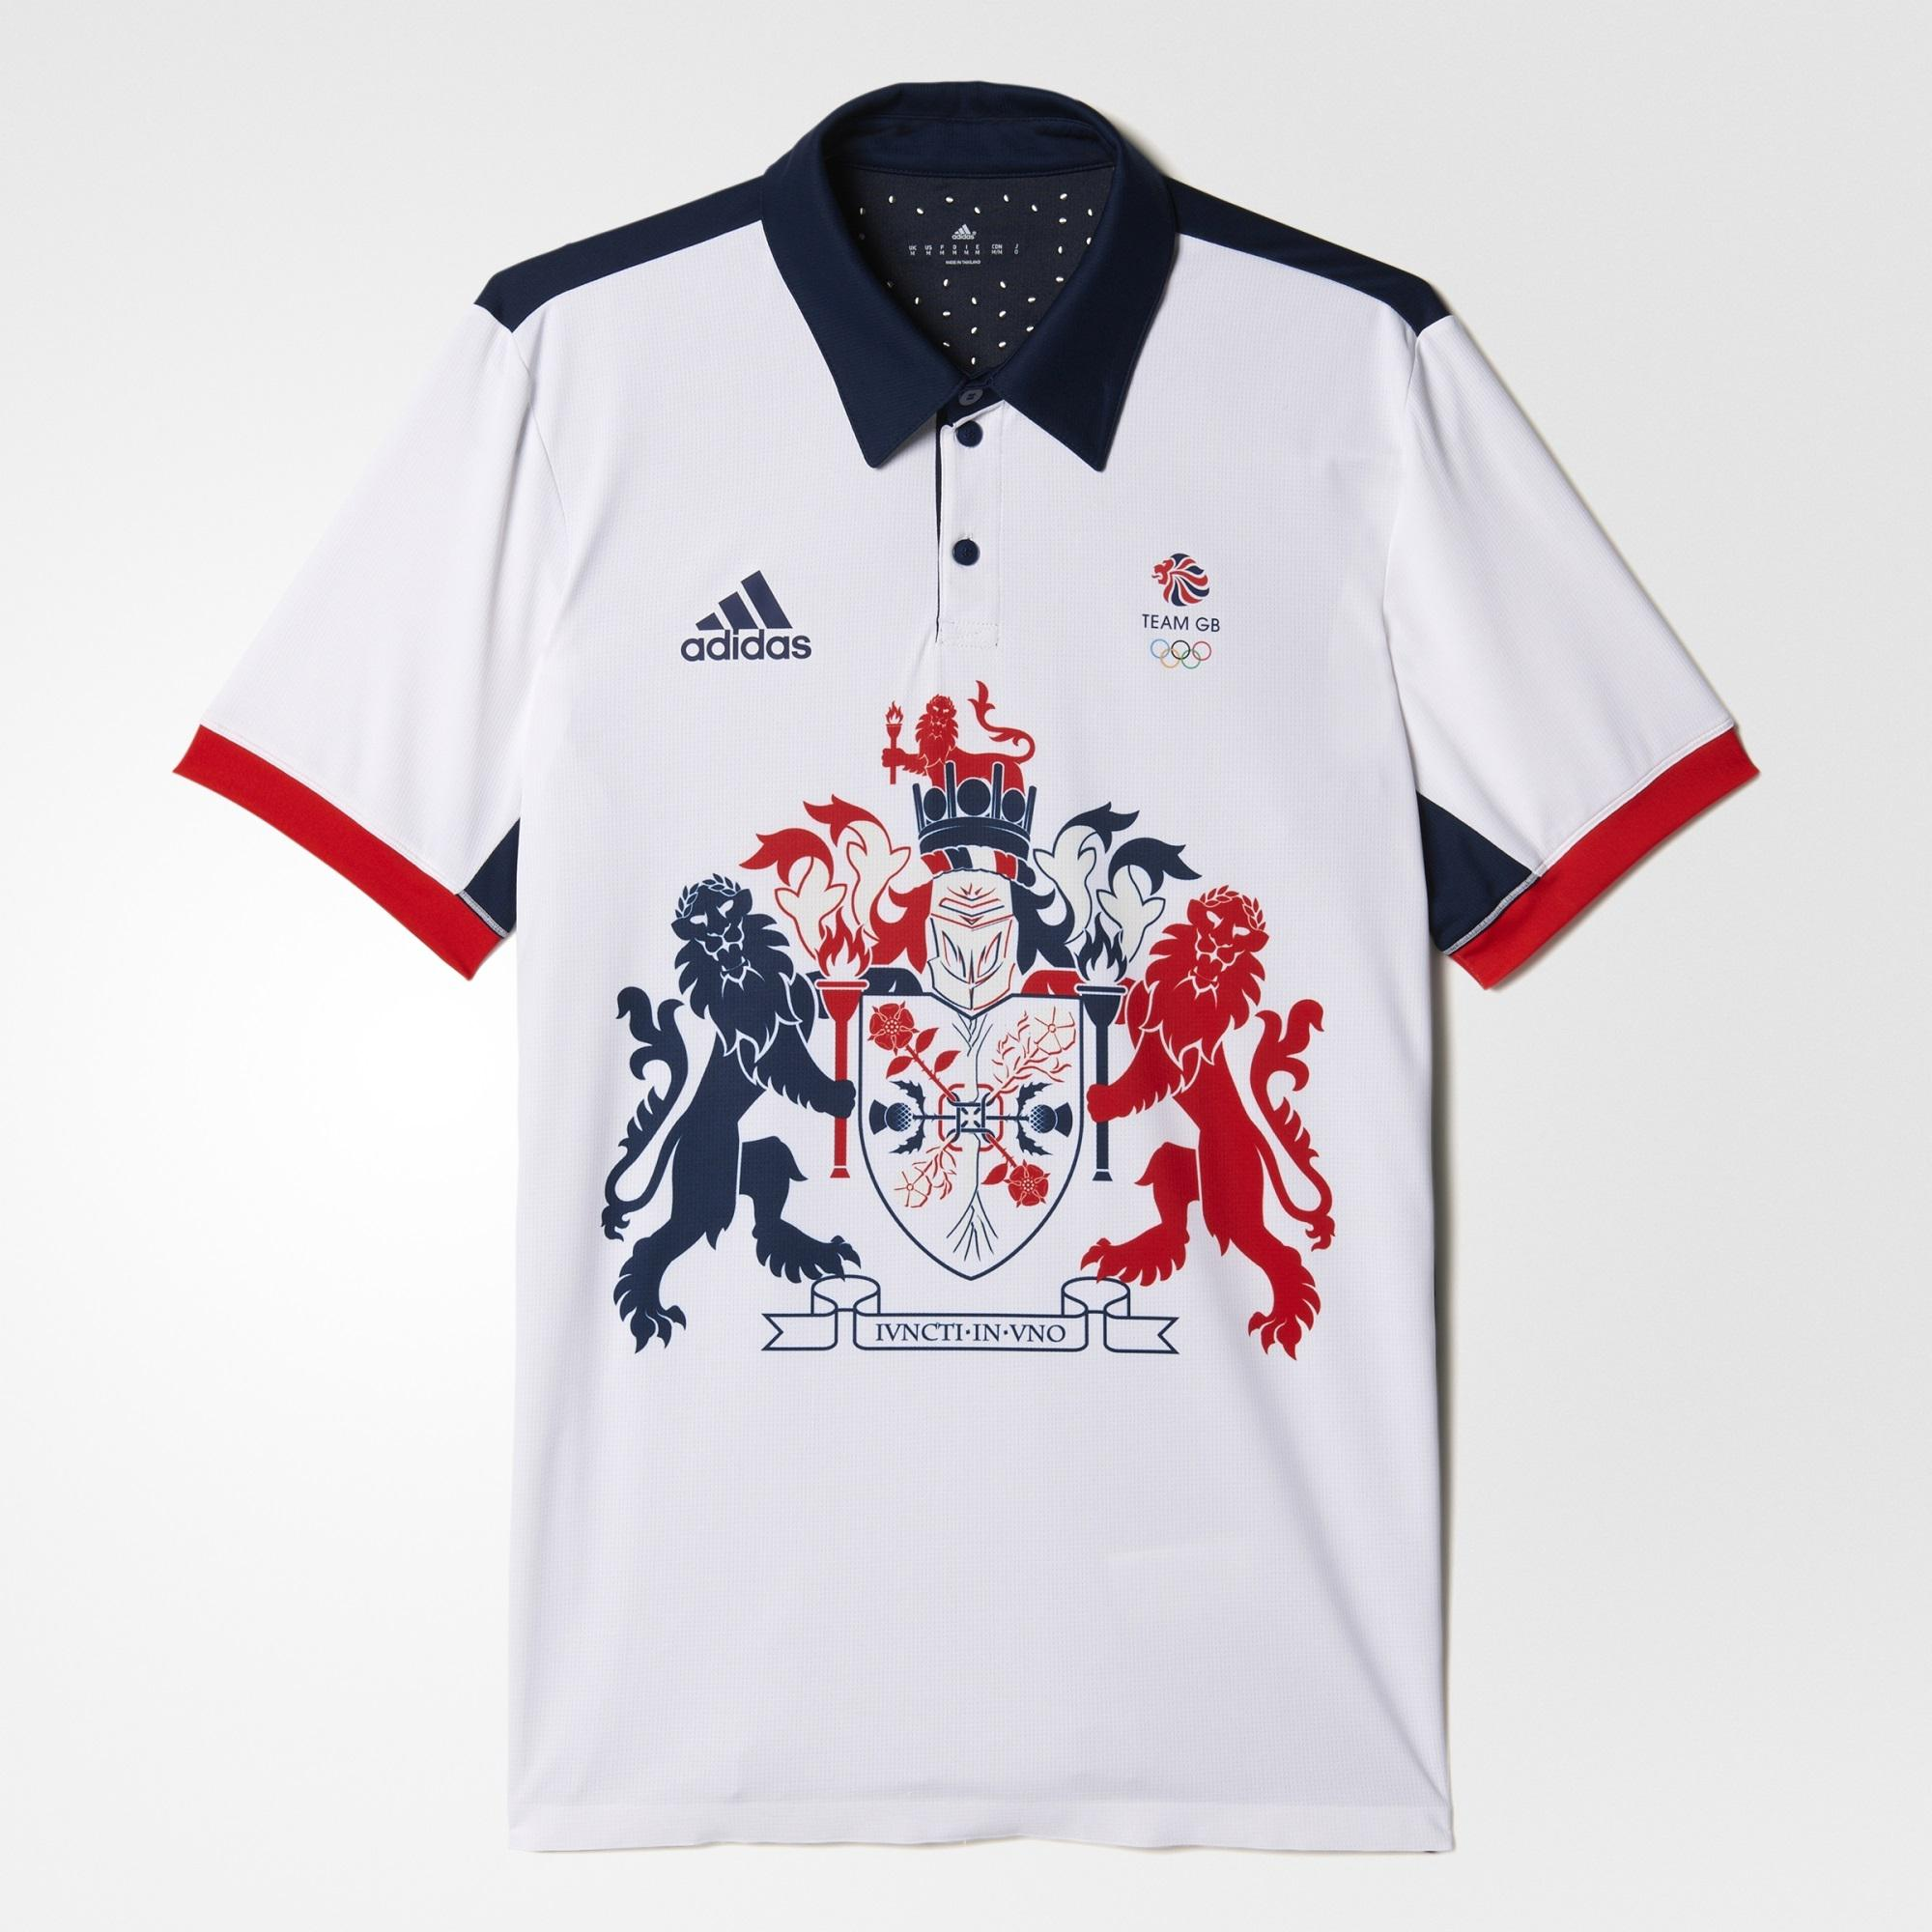 5411fa86d Adidas Mens Rio 2016 Team GB Olympic Climachill Polo - White/Blue -  Tennisnuts.com